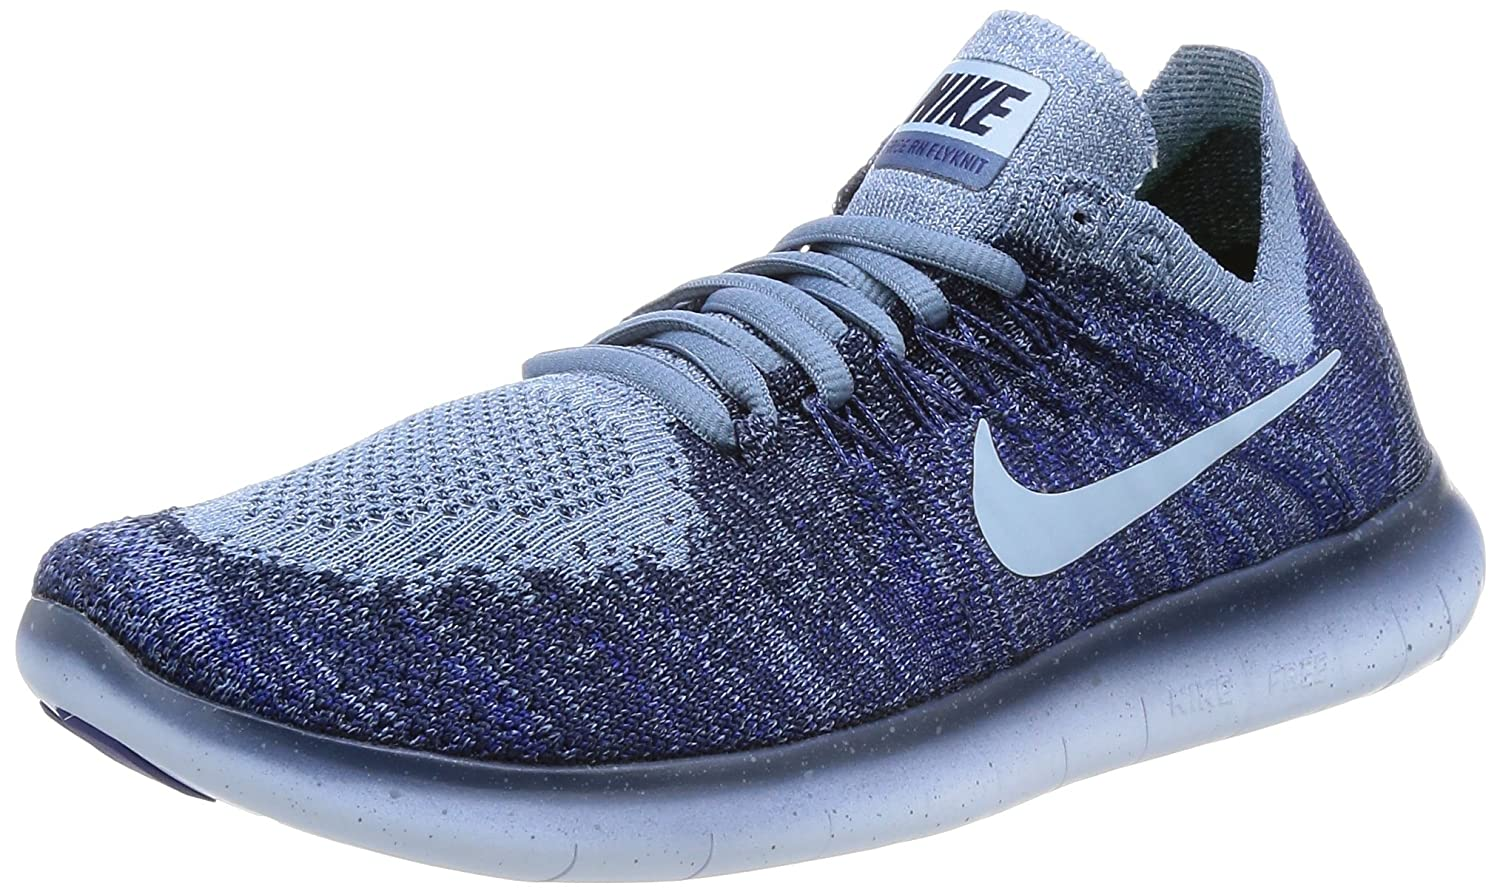 Nike Womens Free RN Flyknit 2017 Running Shoes Ocean Fog Cirrus  Blue College Navy 880844-404 Size 7  Amazon.in  Shoes   Handbags 7568dca0e6